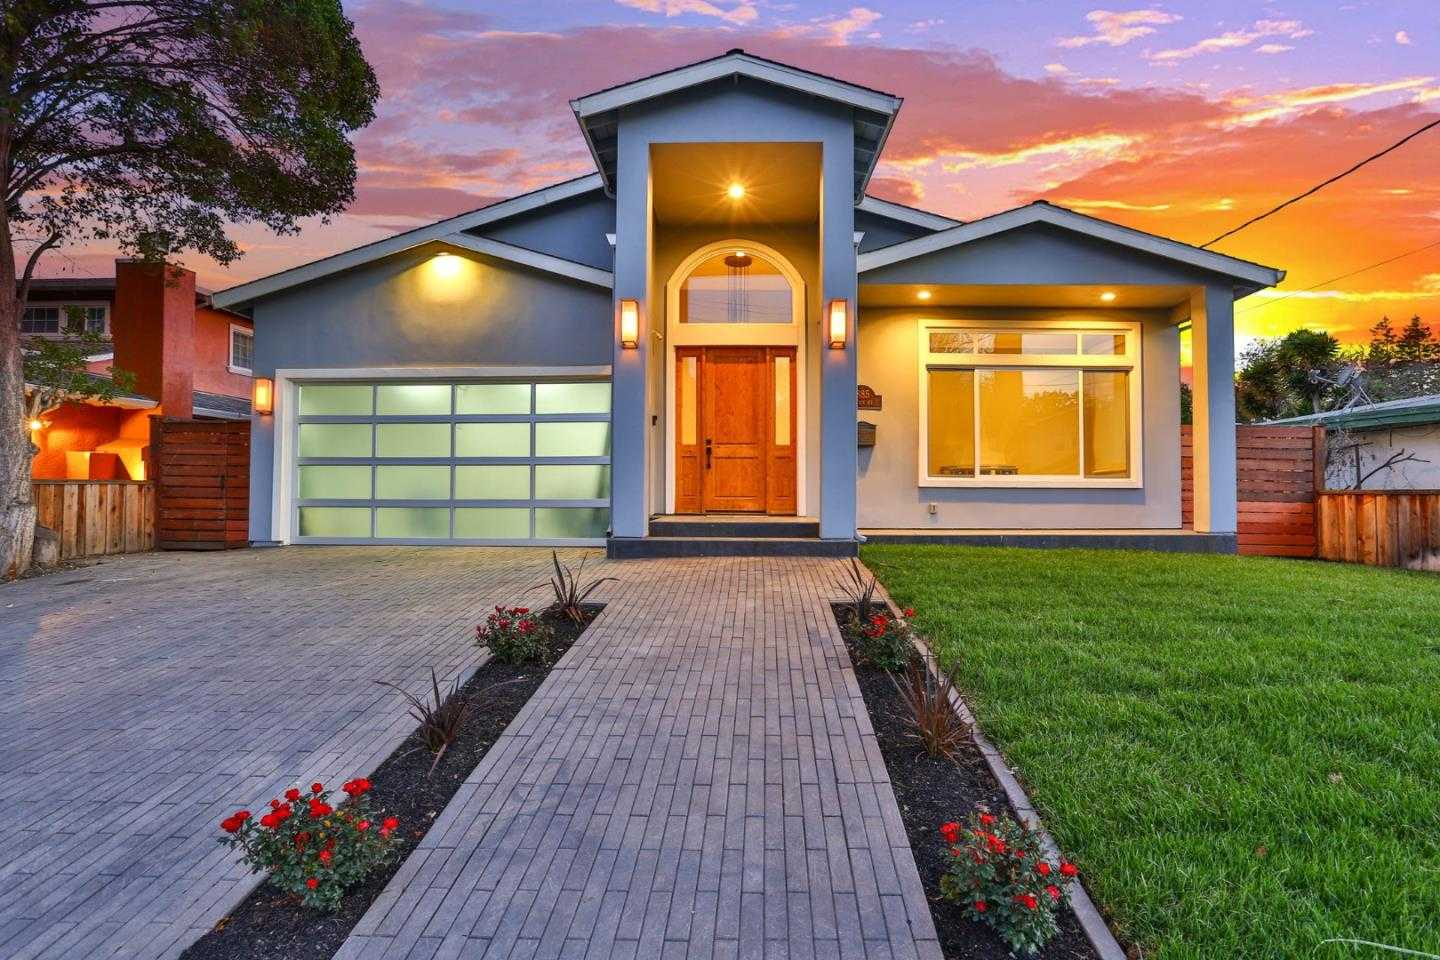 $2,699,000 - 4Br/4Ba -  for Sale in Mountain View